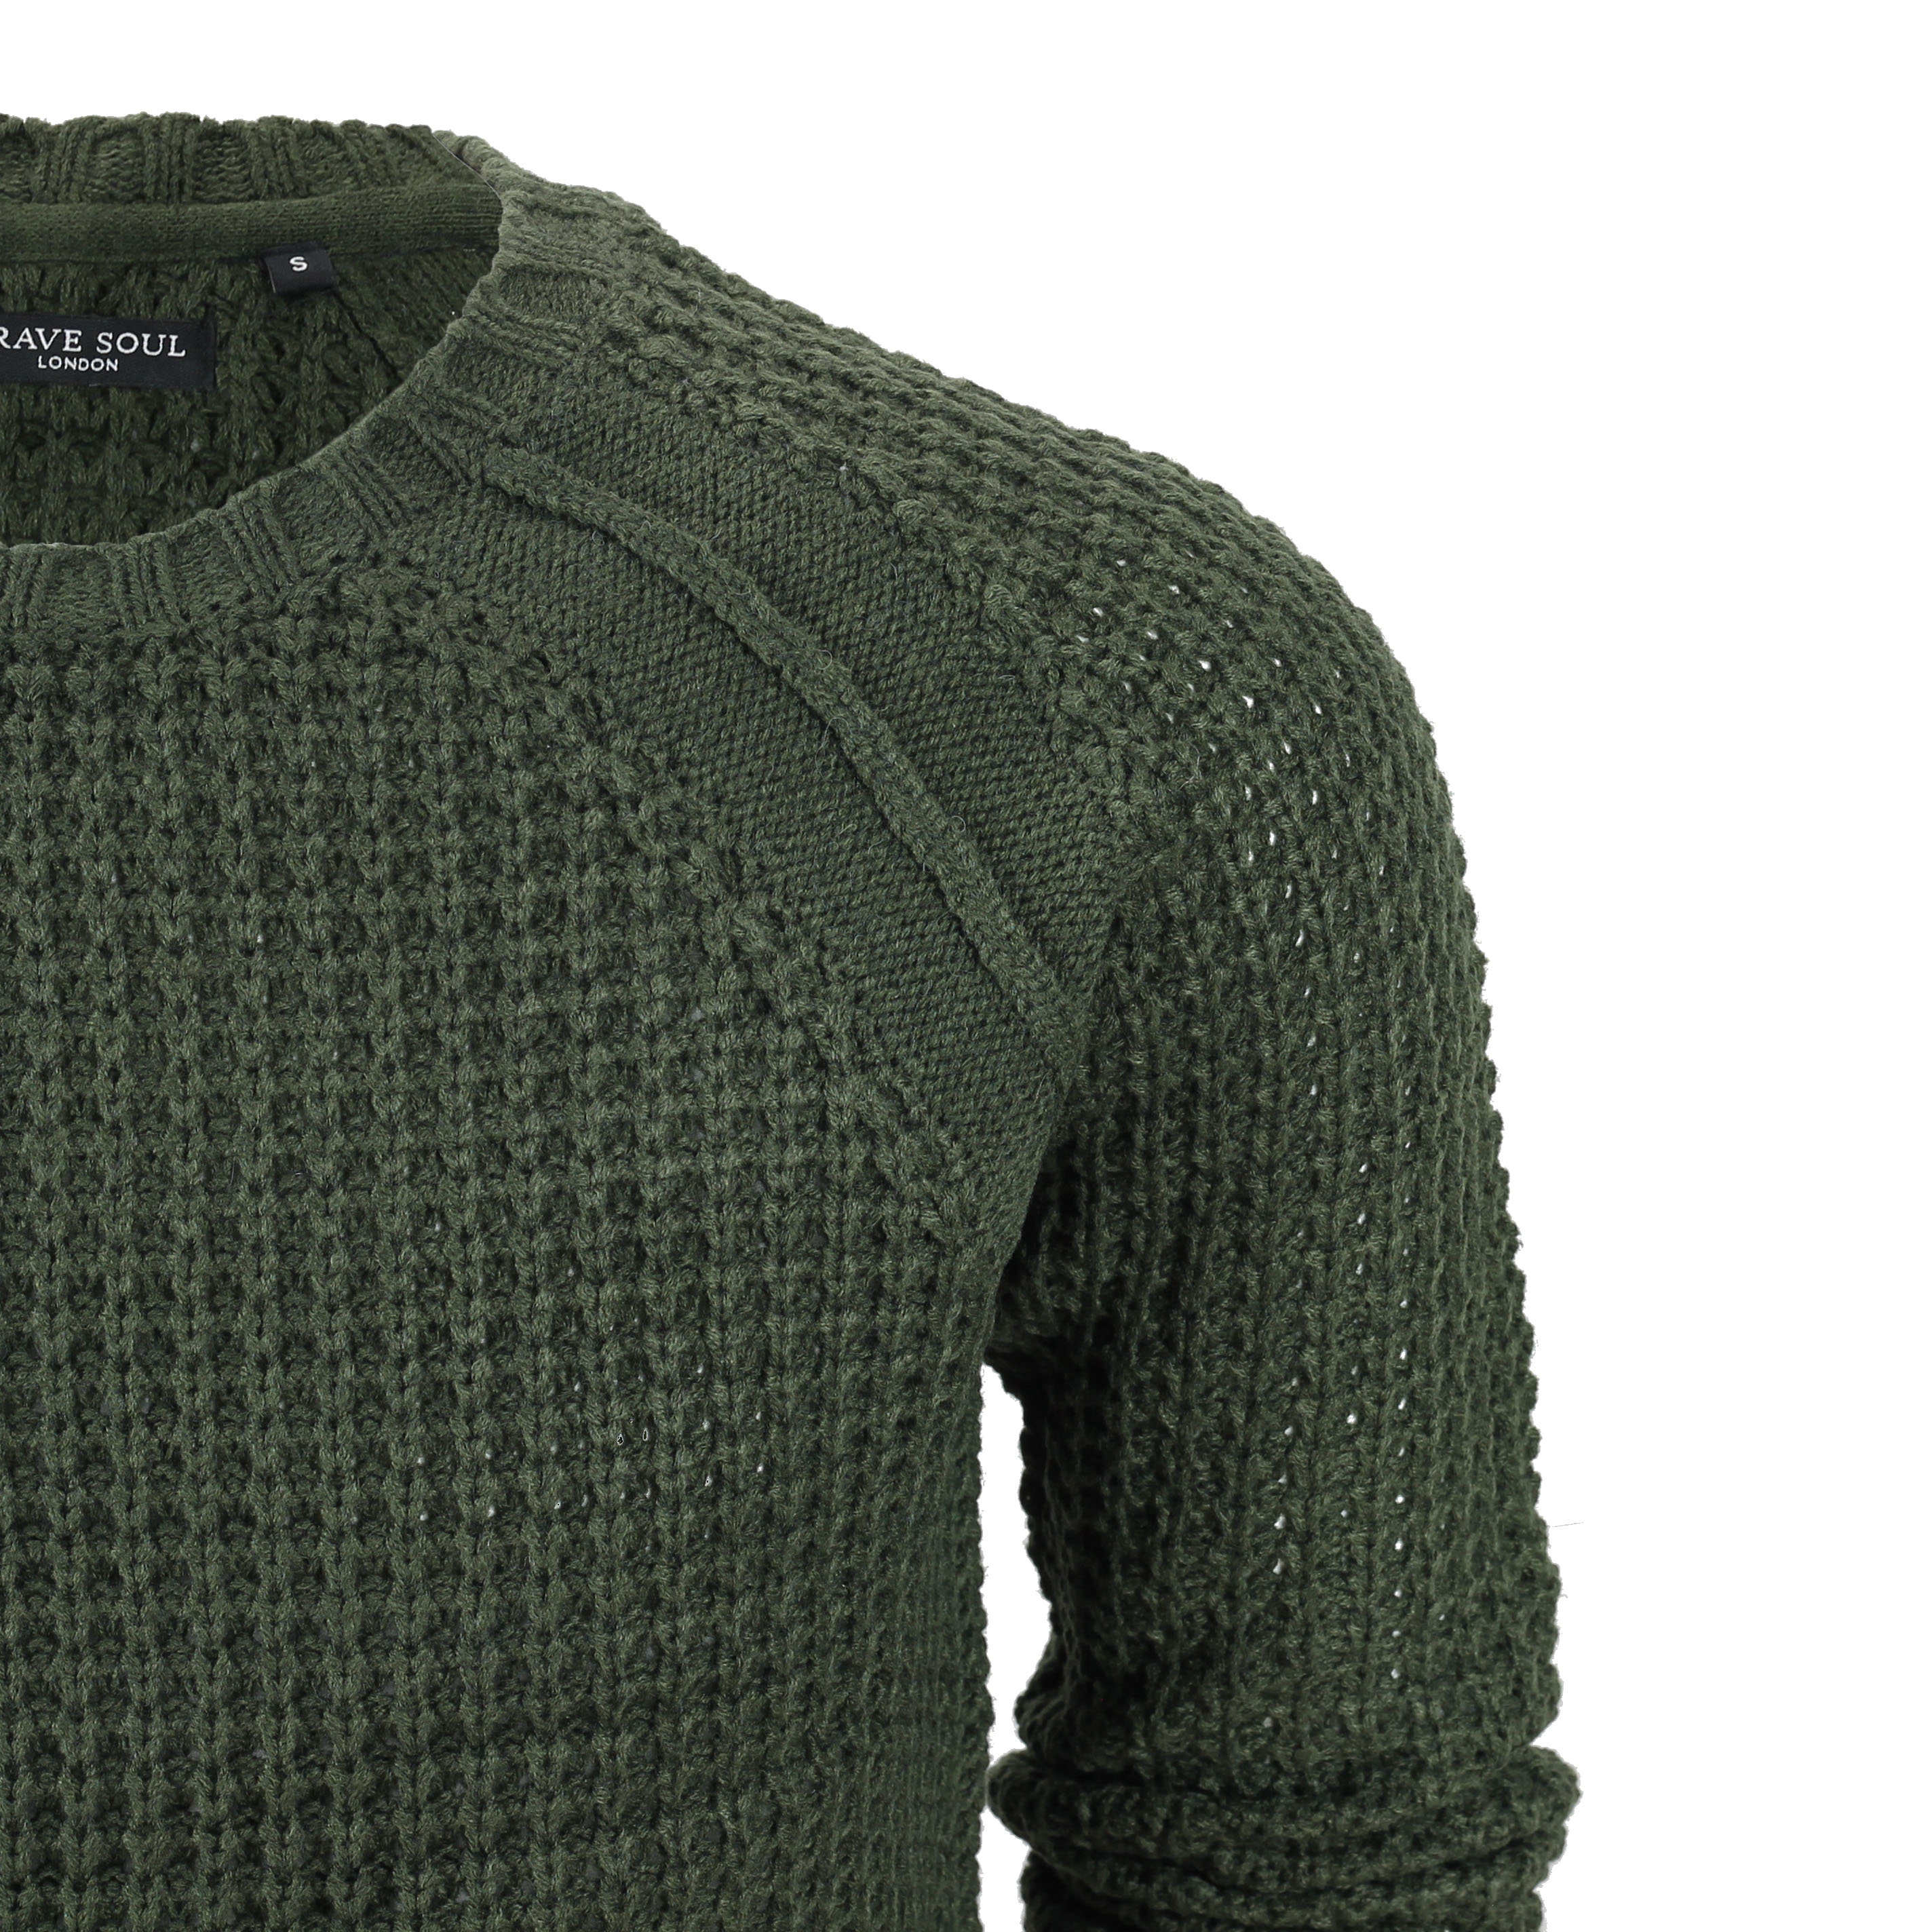 6cfa405bc01 Details about New Mens Brave Soul Vintage Fisherman Cable Knit Jumper  Knitted Winter Sweater